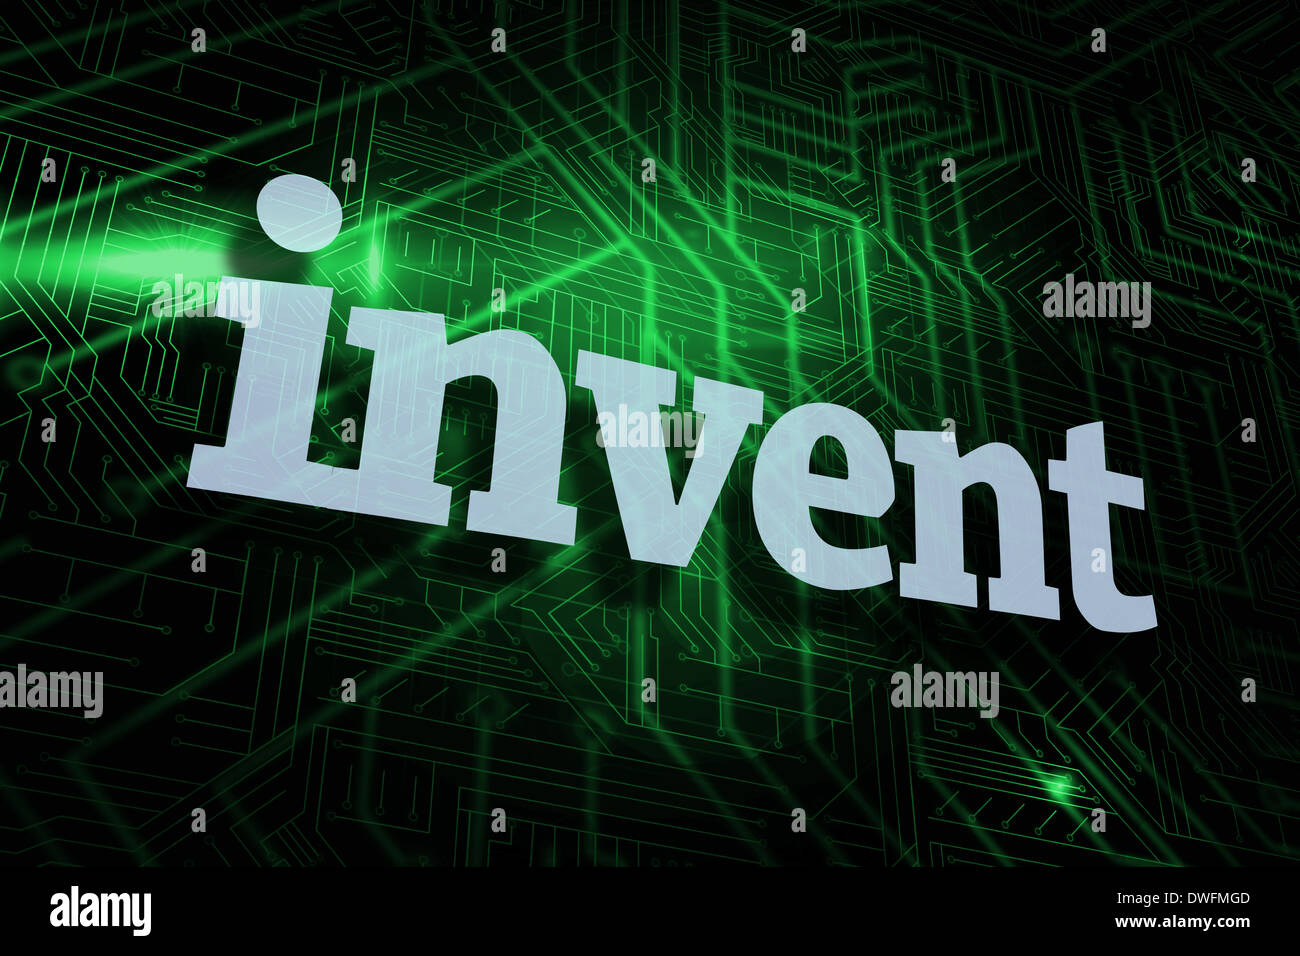 Invent against green and black circuit board - Stock Image